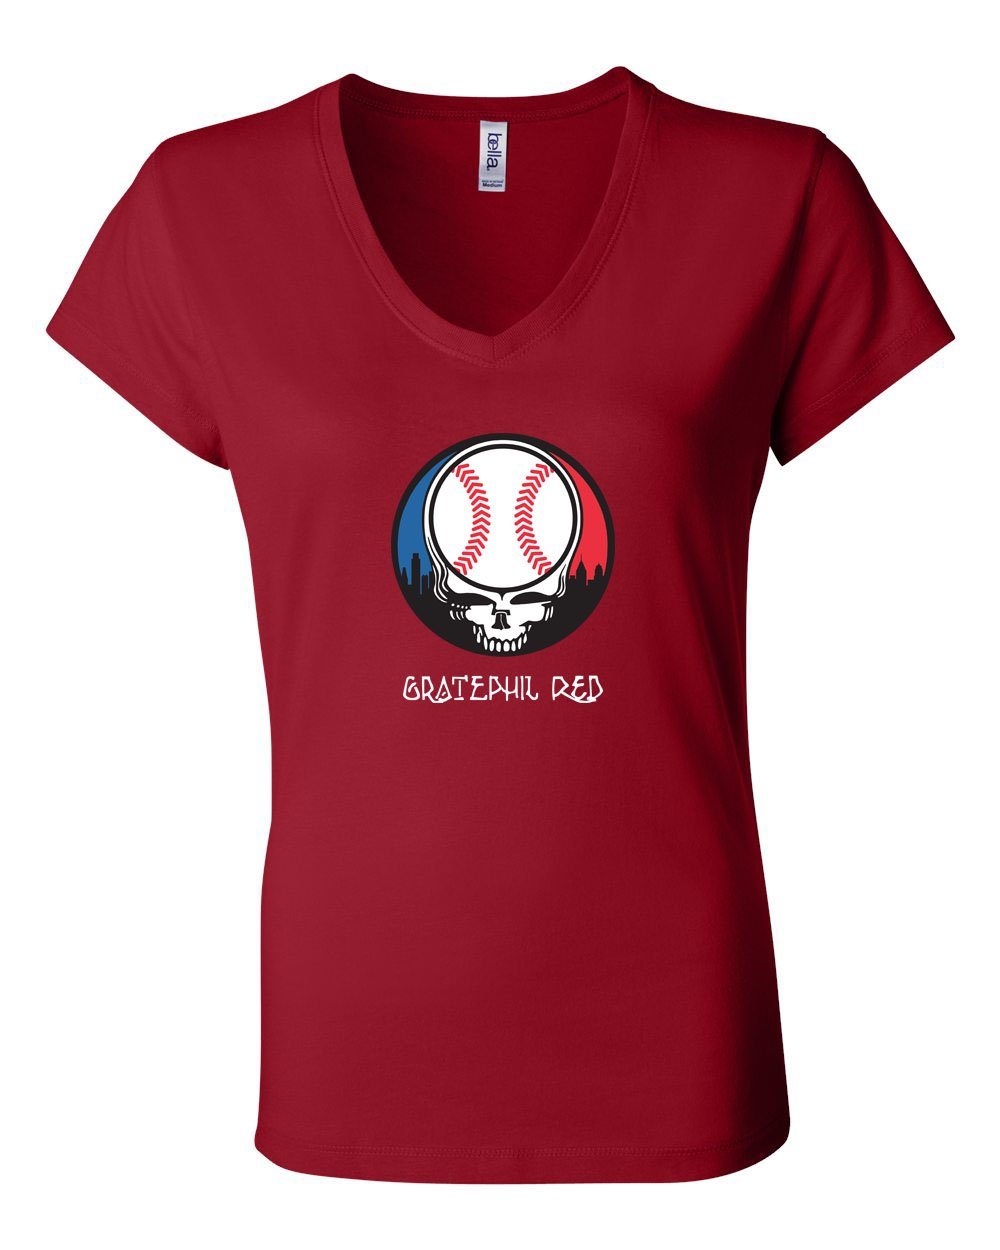 Gratephil Red LADIES Junior Fit V-Neck